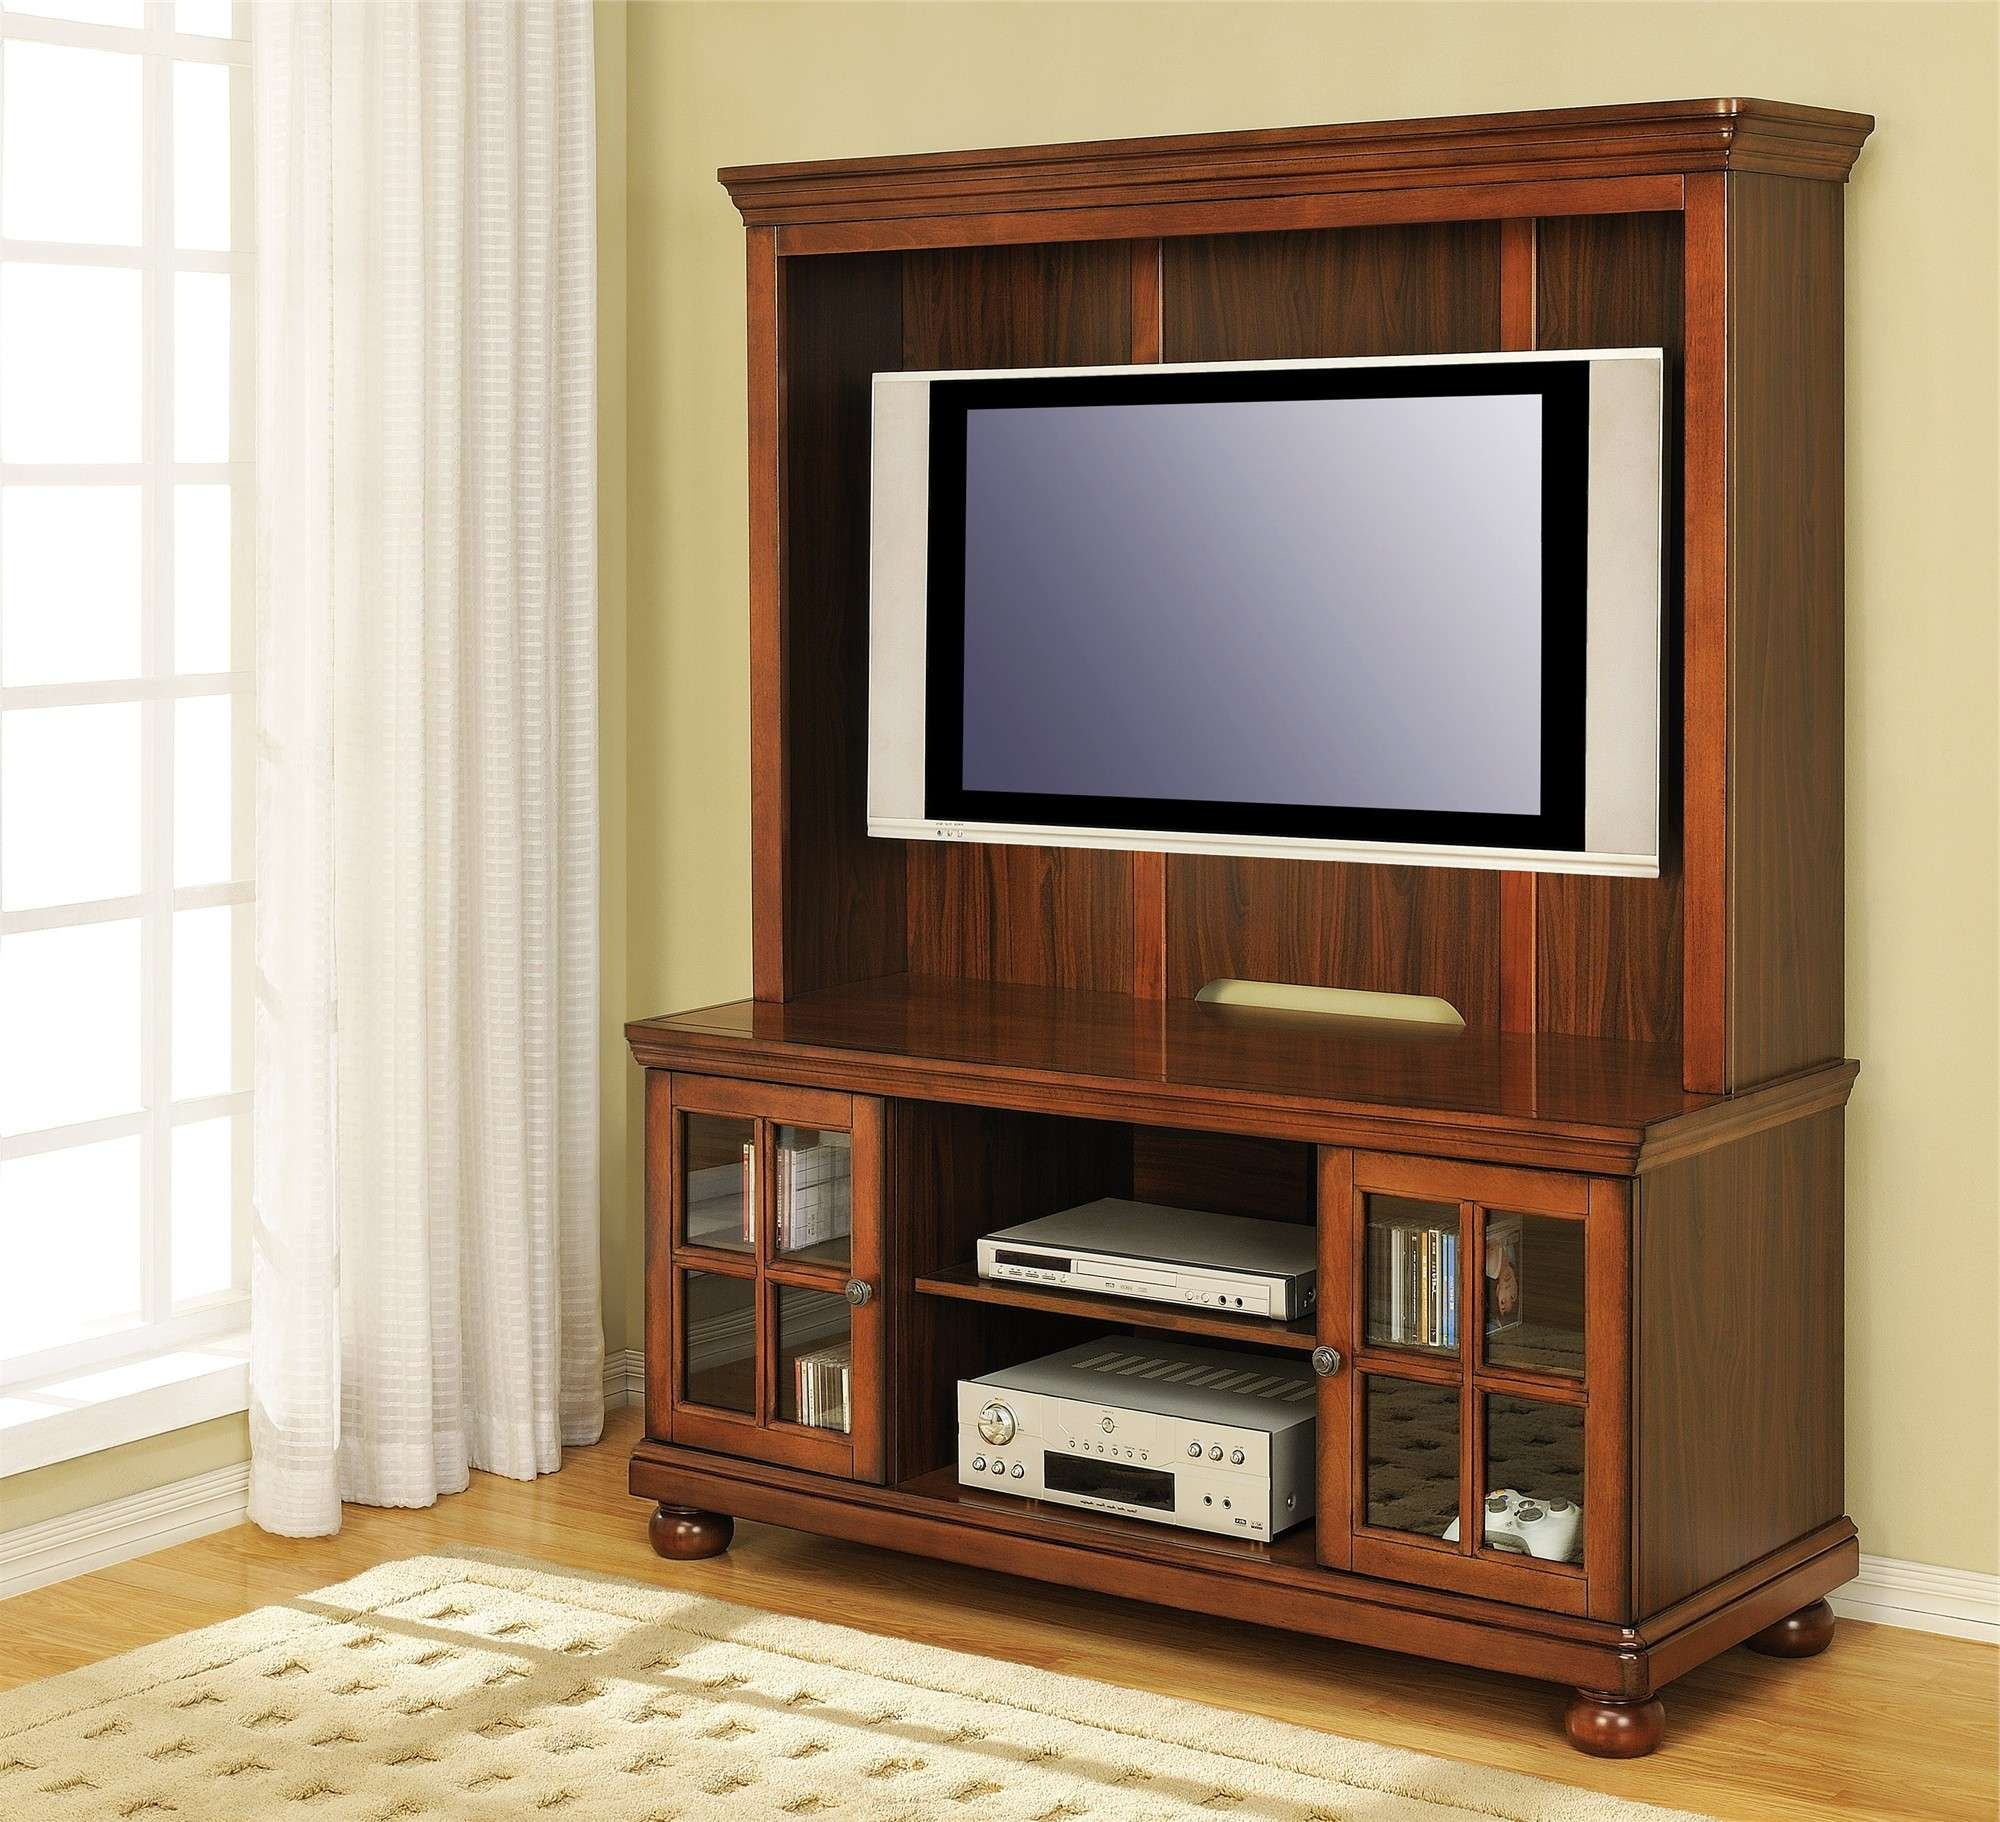 Modern Brown Oak Wood Media Cabinet With Mounted Tv Of Dazzling In Wooden Tv Cabinets (View 12 of 20)